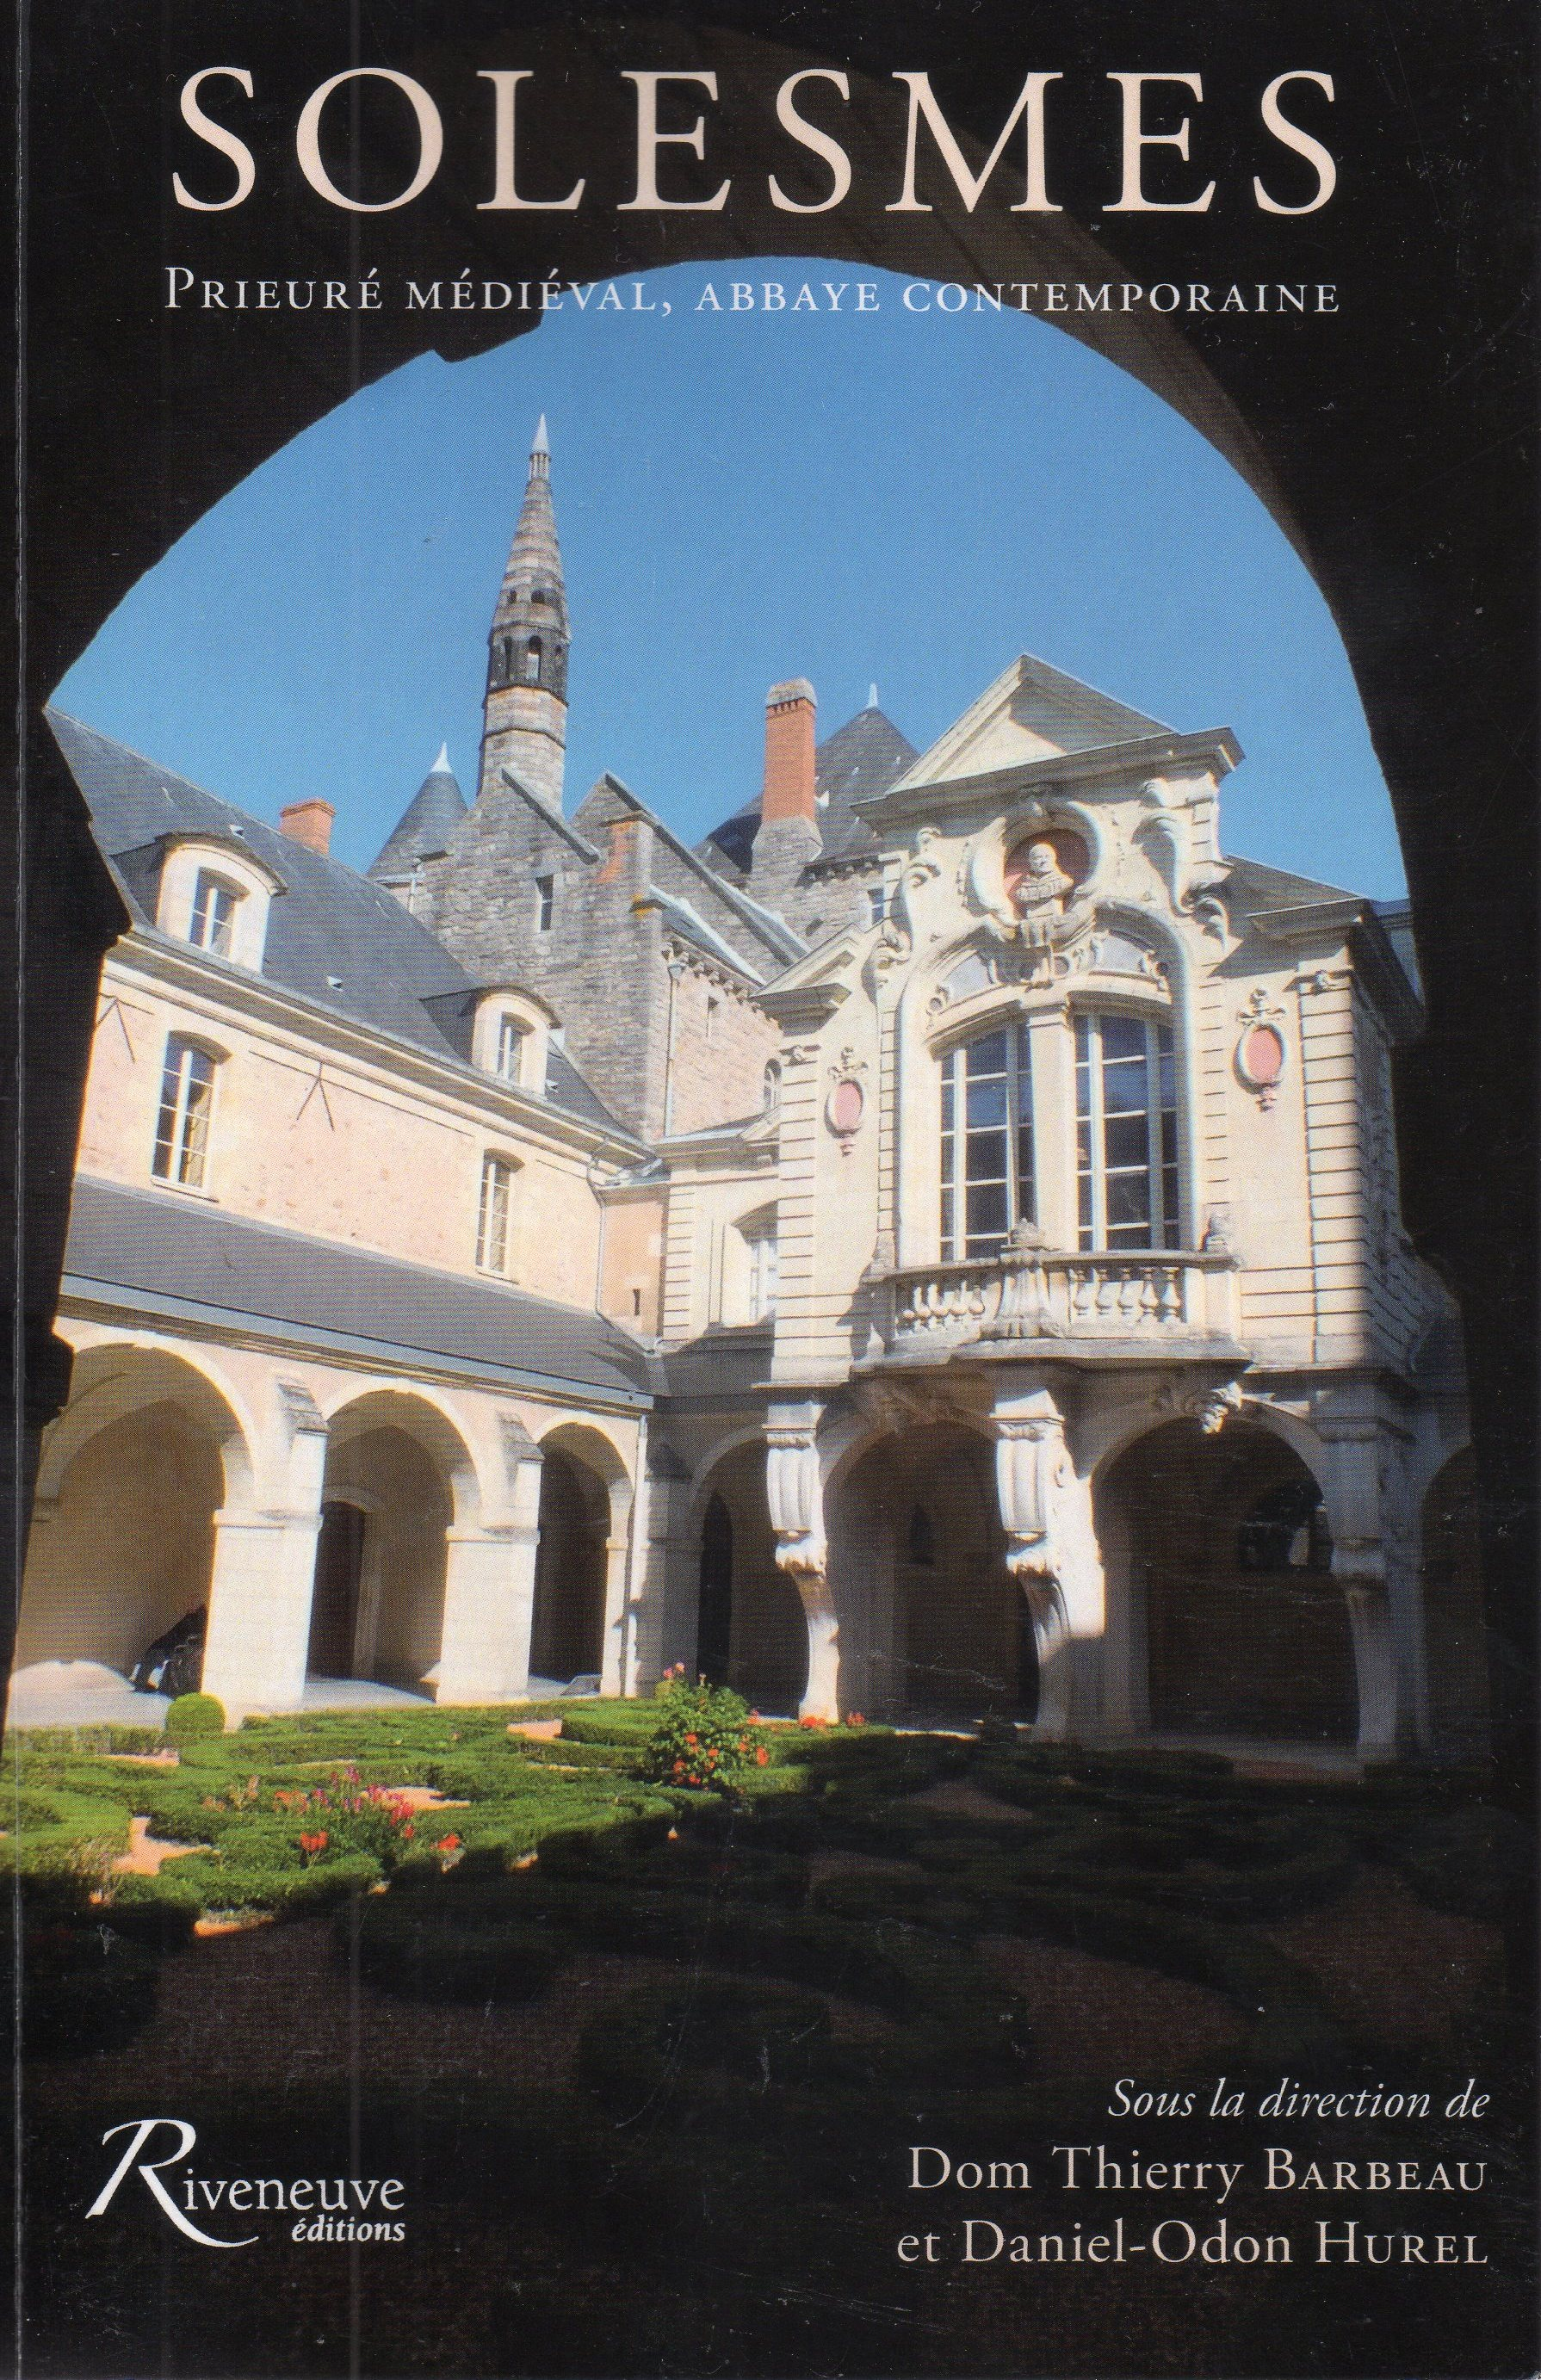 https://static.blog4ever.com/2015/02/794874/Solesmes-1.jpg